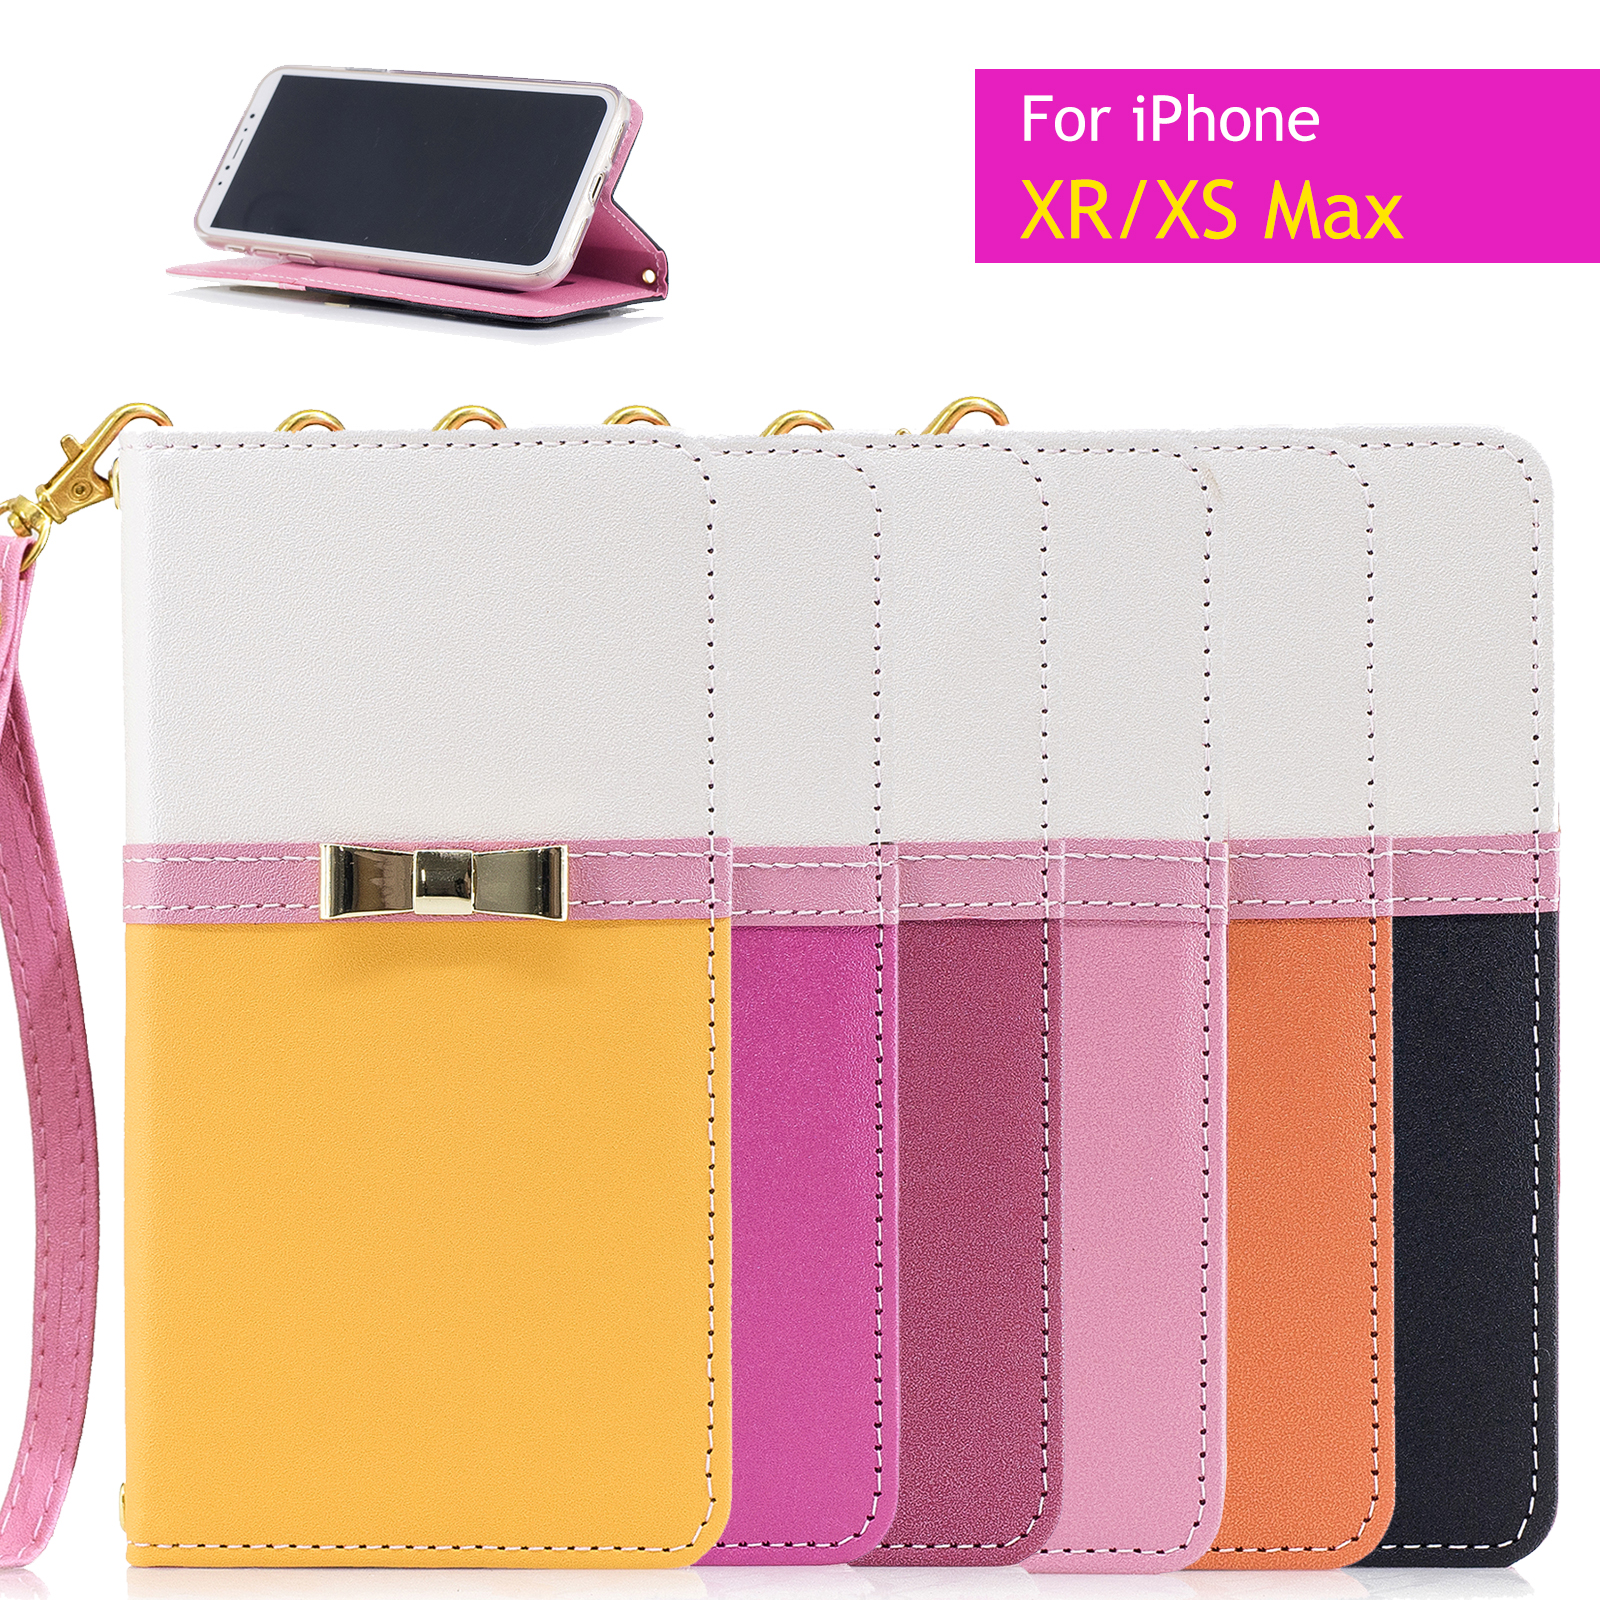 0a83cff08 Image is loading Bowknot-Wallet-Women-Leather-Card-Stand-Case-Cover-